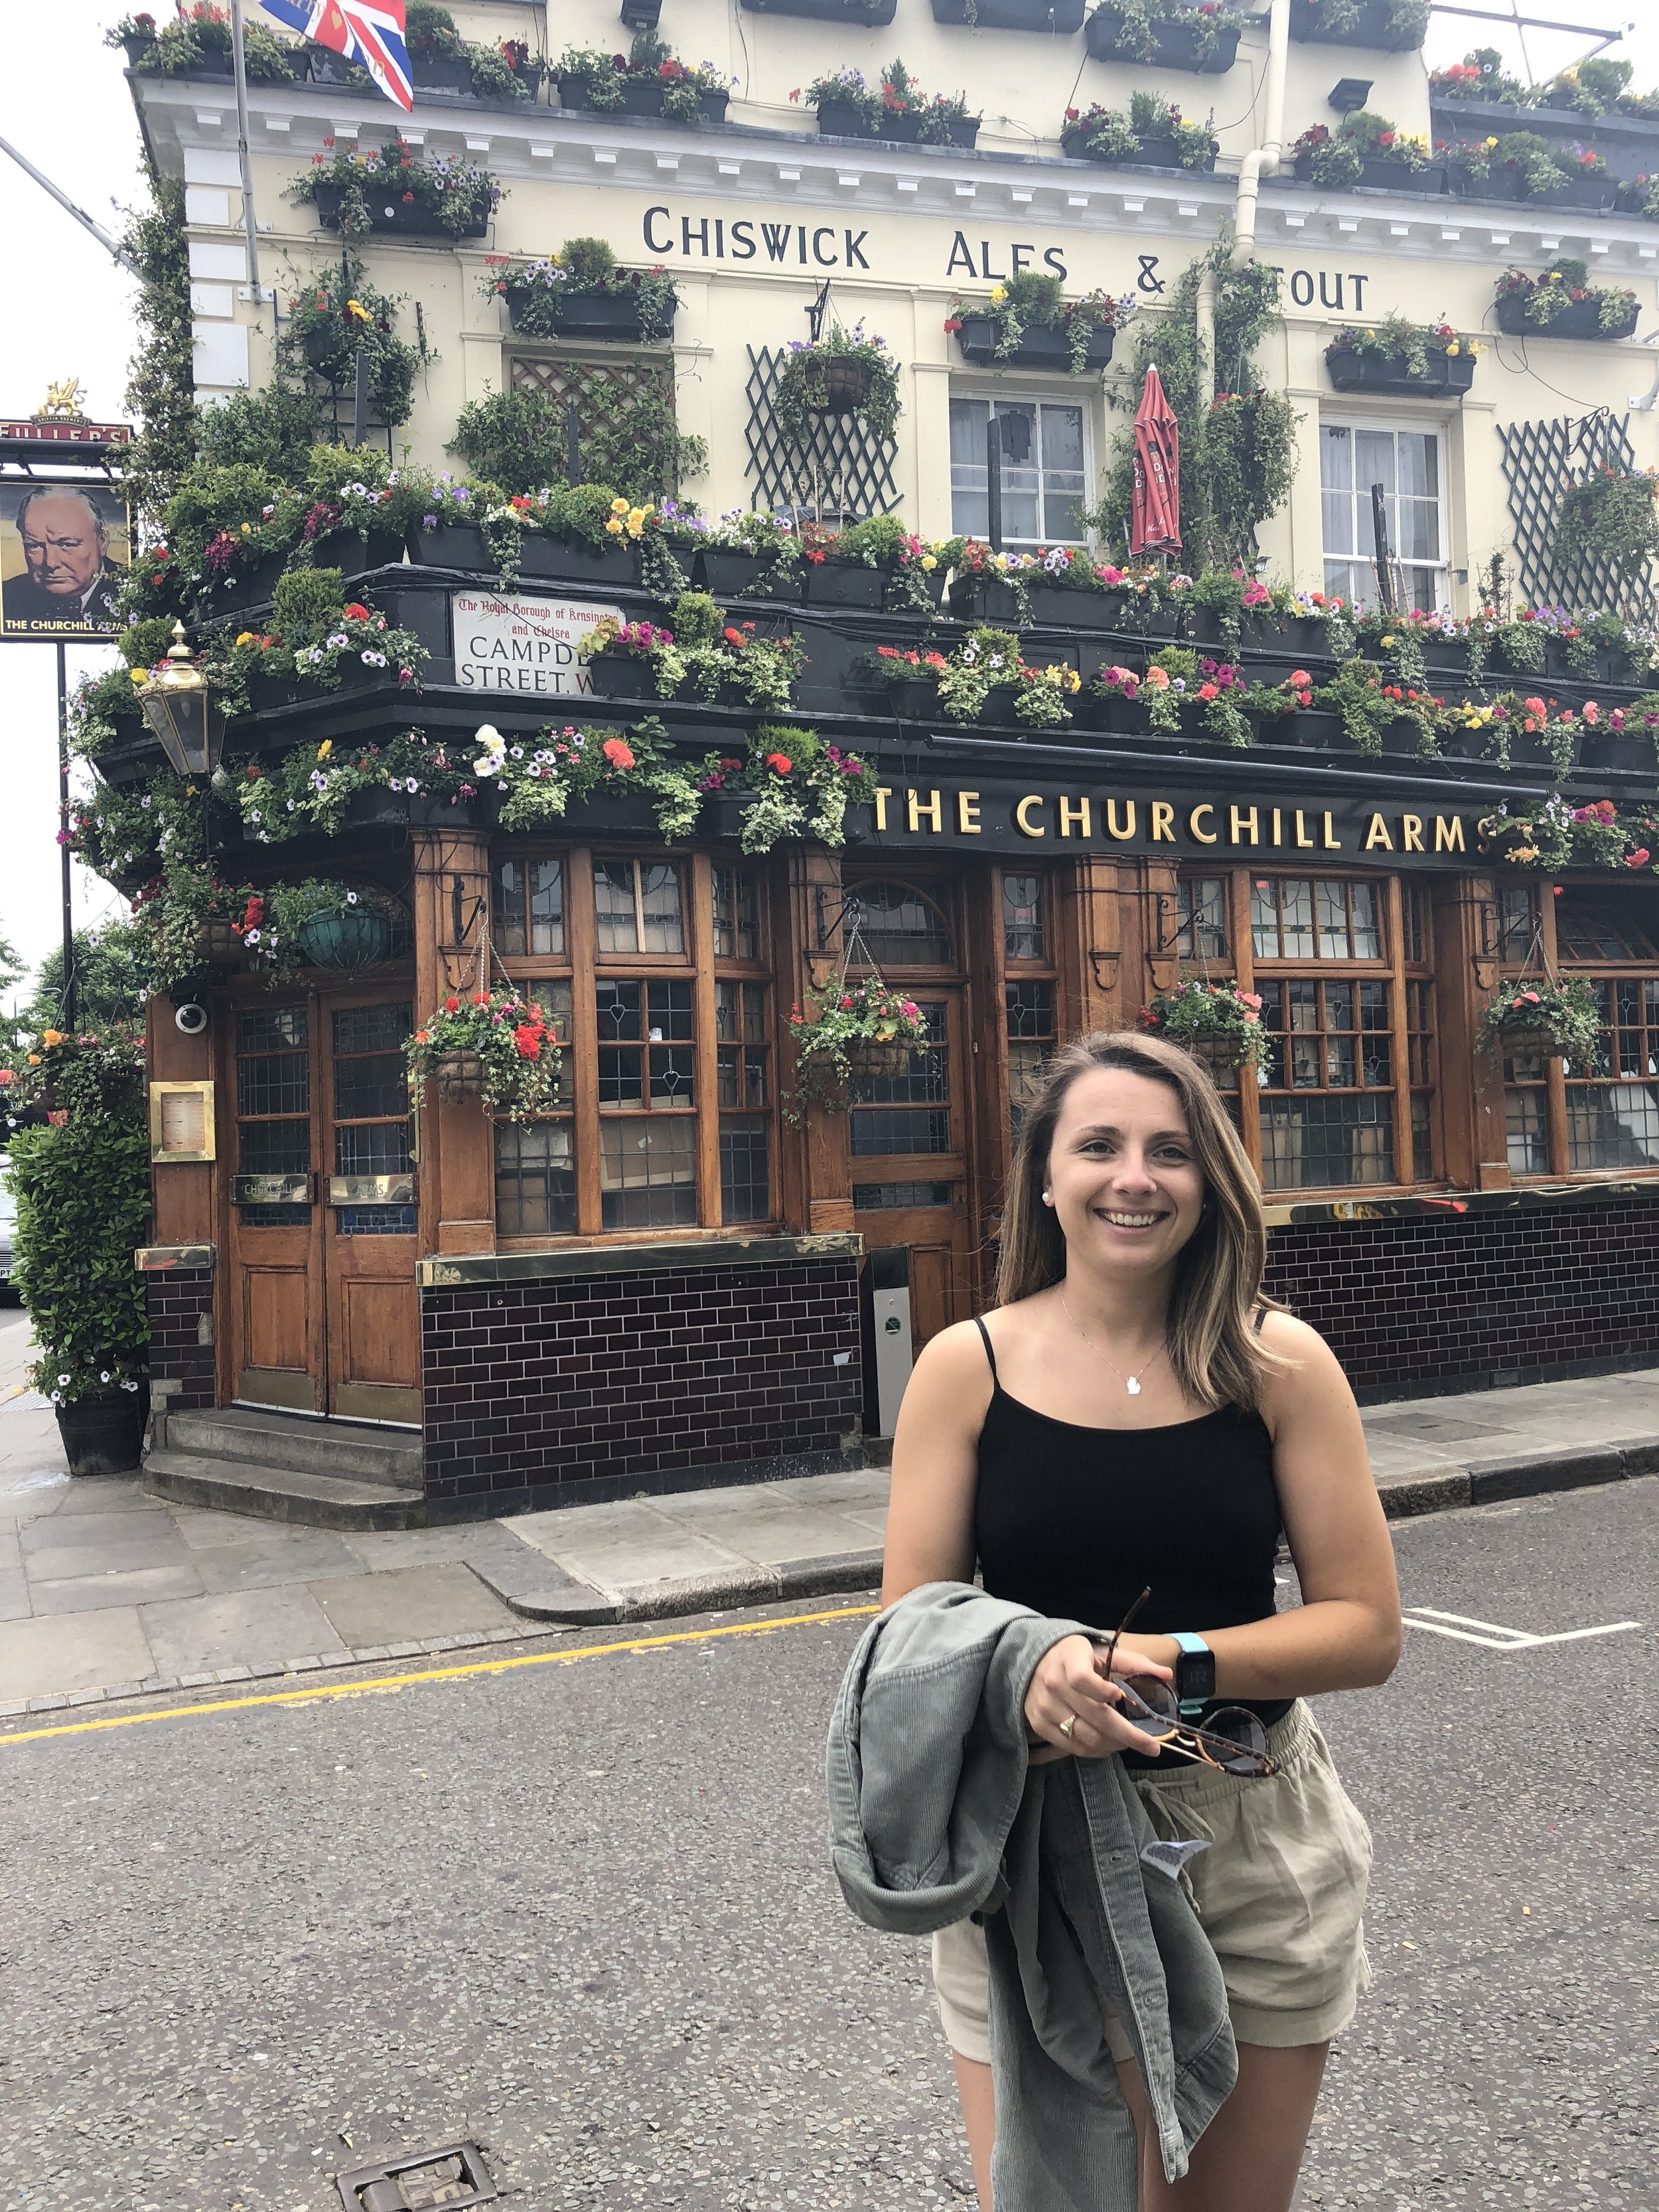 pub-flowers-london.JPG